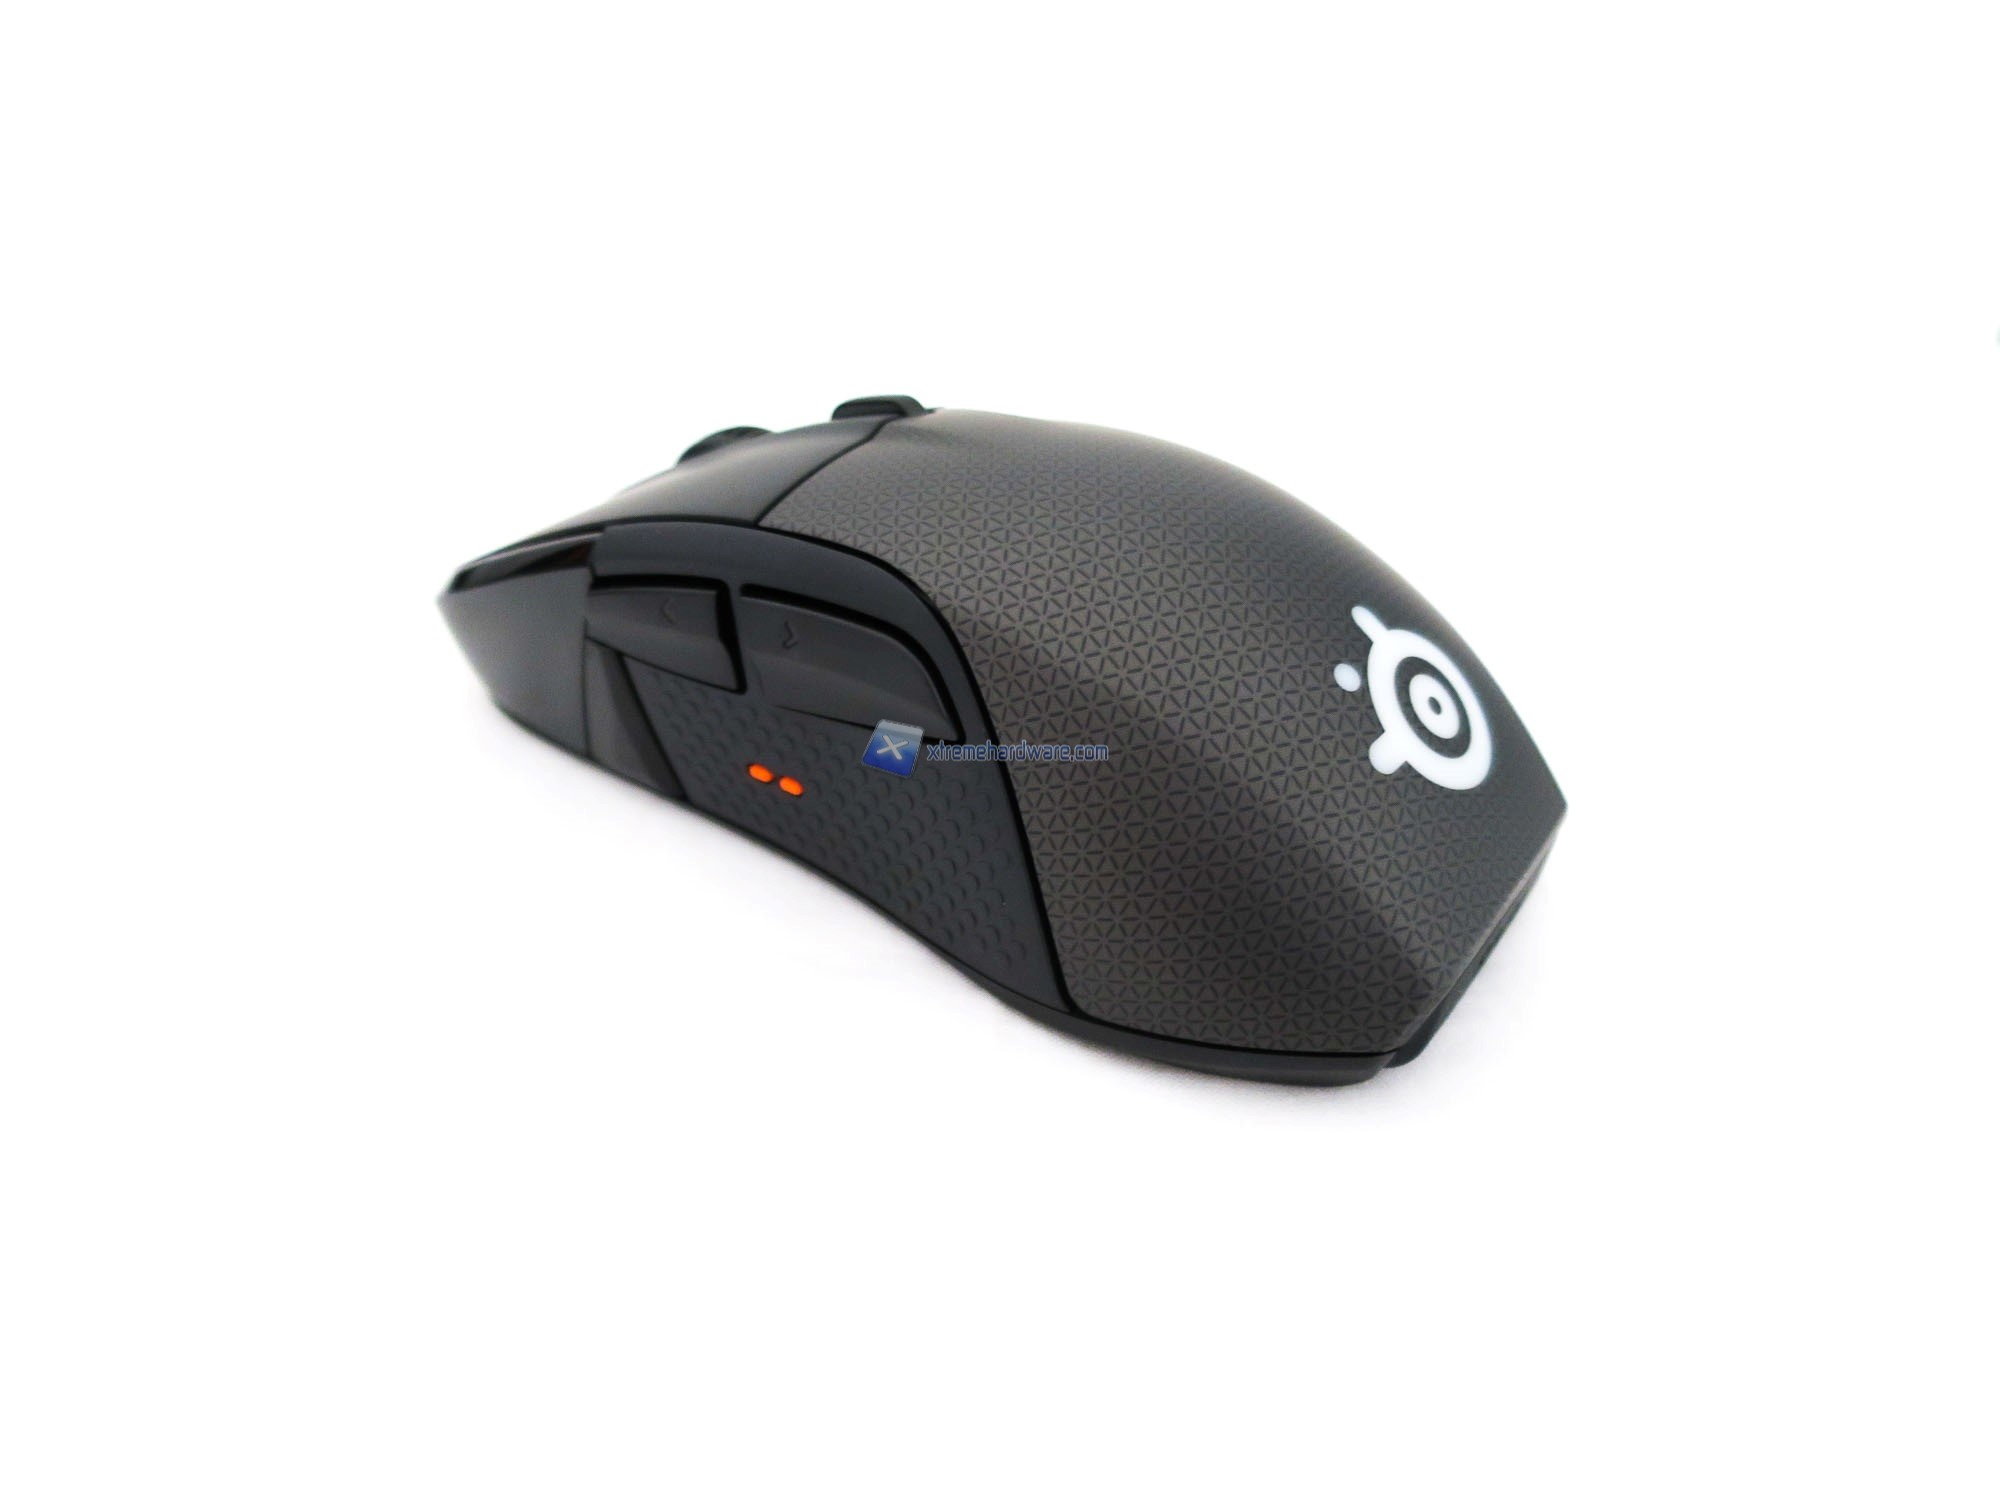 SteelSeries Rival 700 18